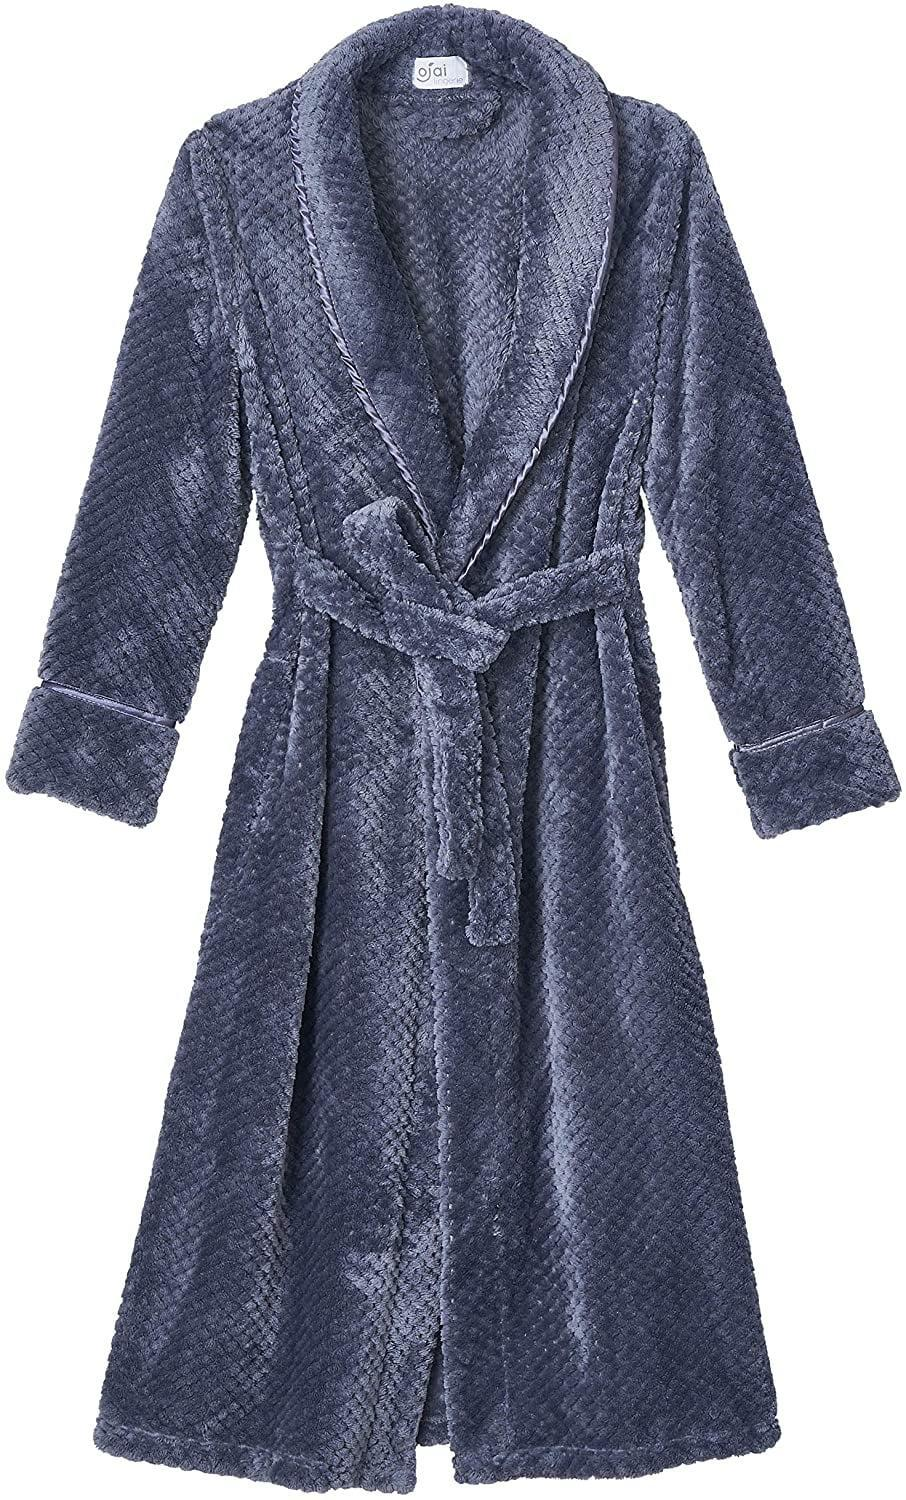 <p>The <span>Ojai Lingerie Ultra Plush Fleece Bathrobe</span> ($164) is the ultimate boujie-meets-cozy vibes find.</p>